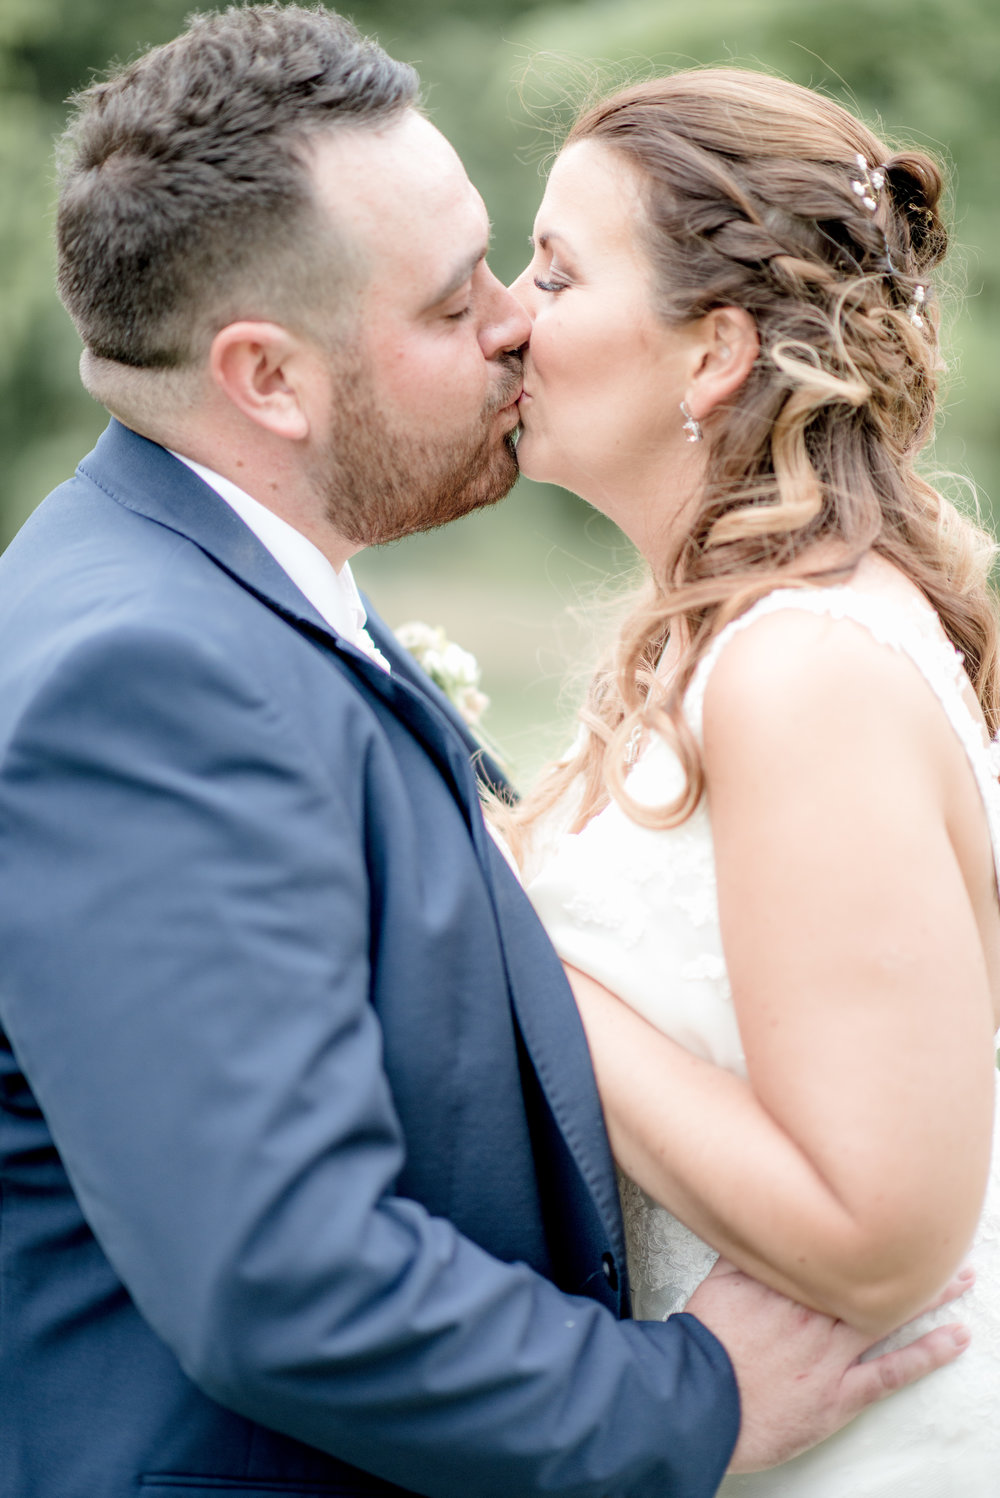 Chippenham Park, Cambridgeshire, Sophie & Samuel said their 'I do's' in the beautiful gardens of Chippenham Park.